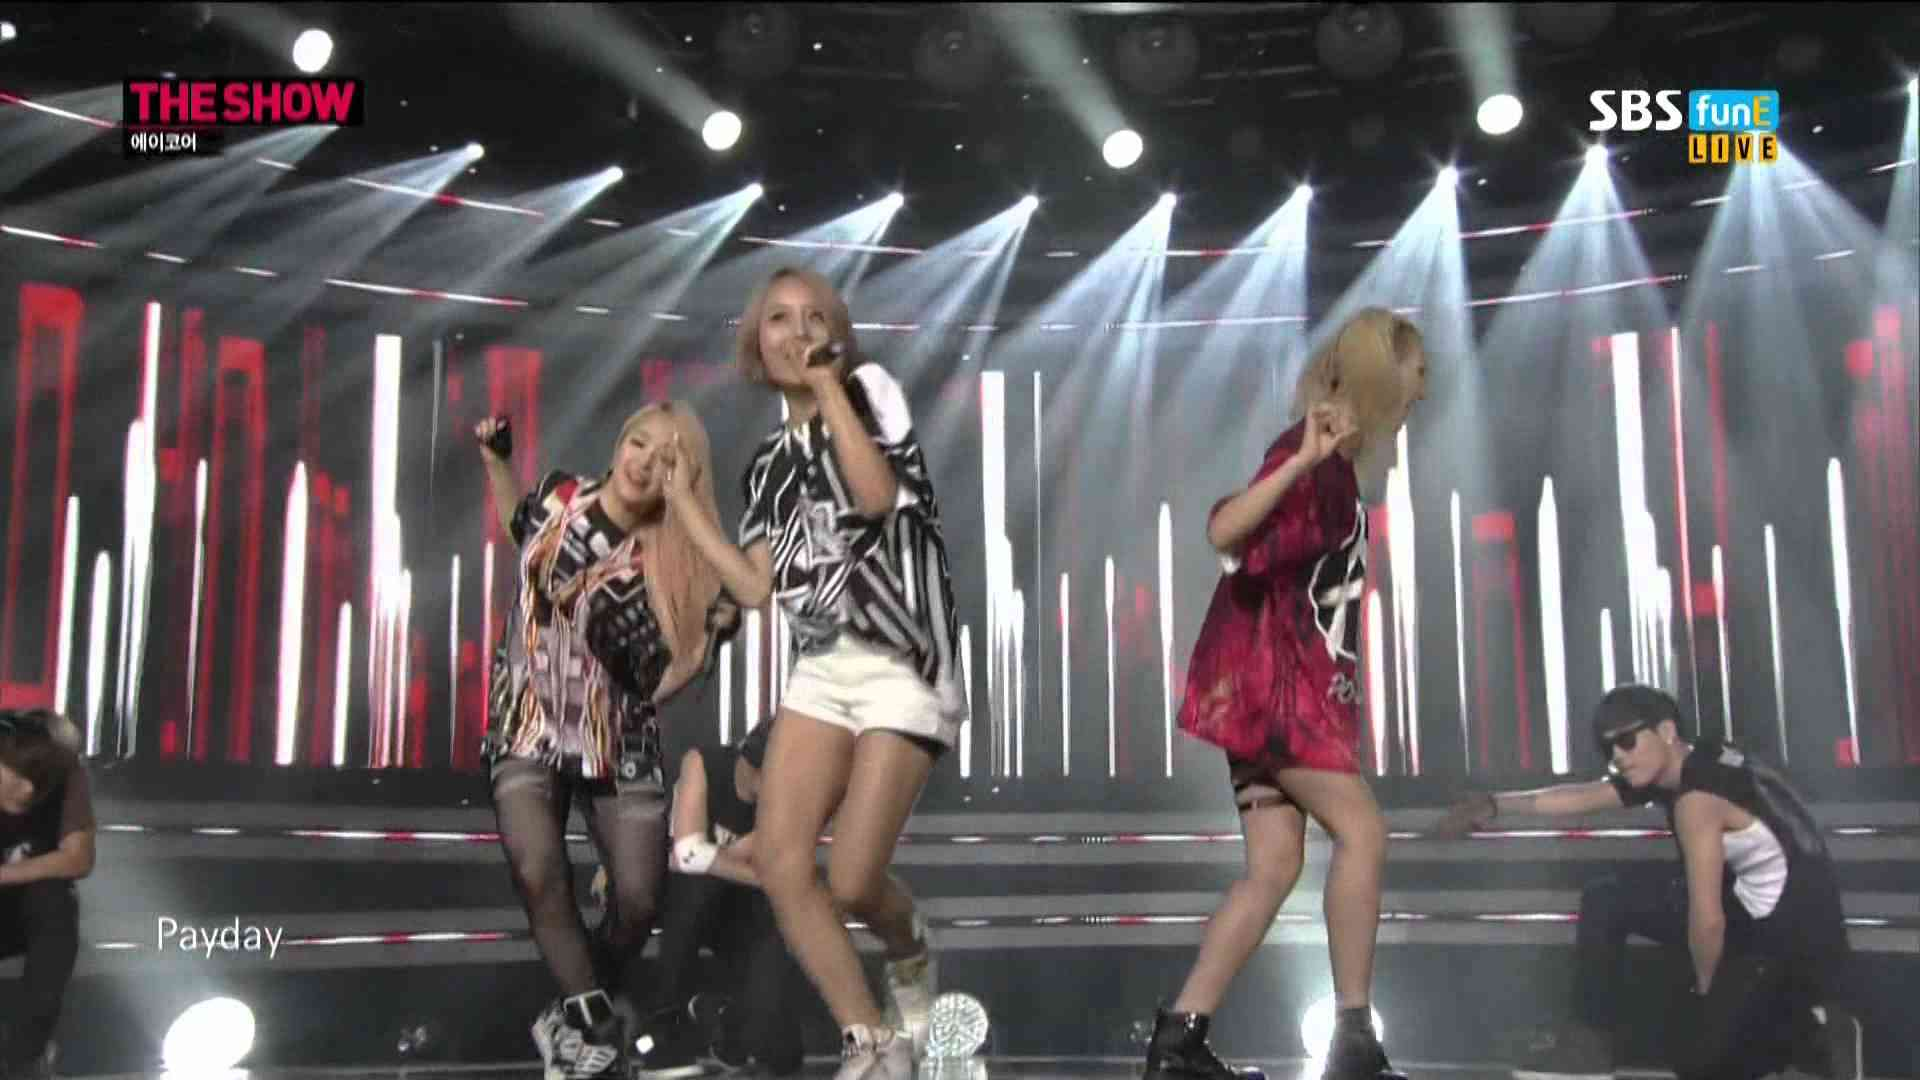 140812 A.KOR (에이코어) - Payday (페이데이) @ The Show All About K-pop [1080P] - YouTube